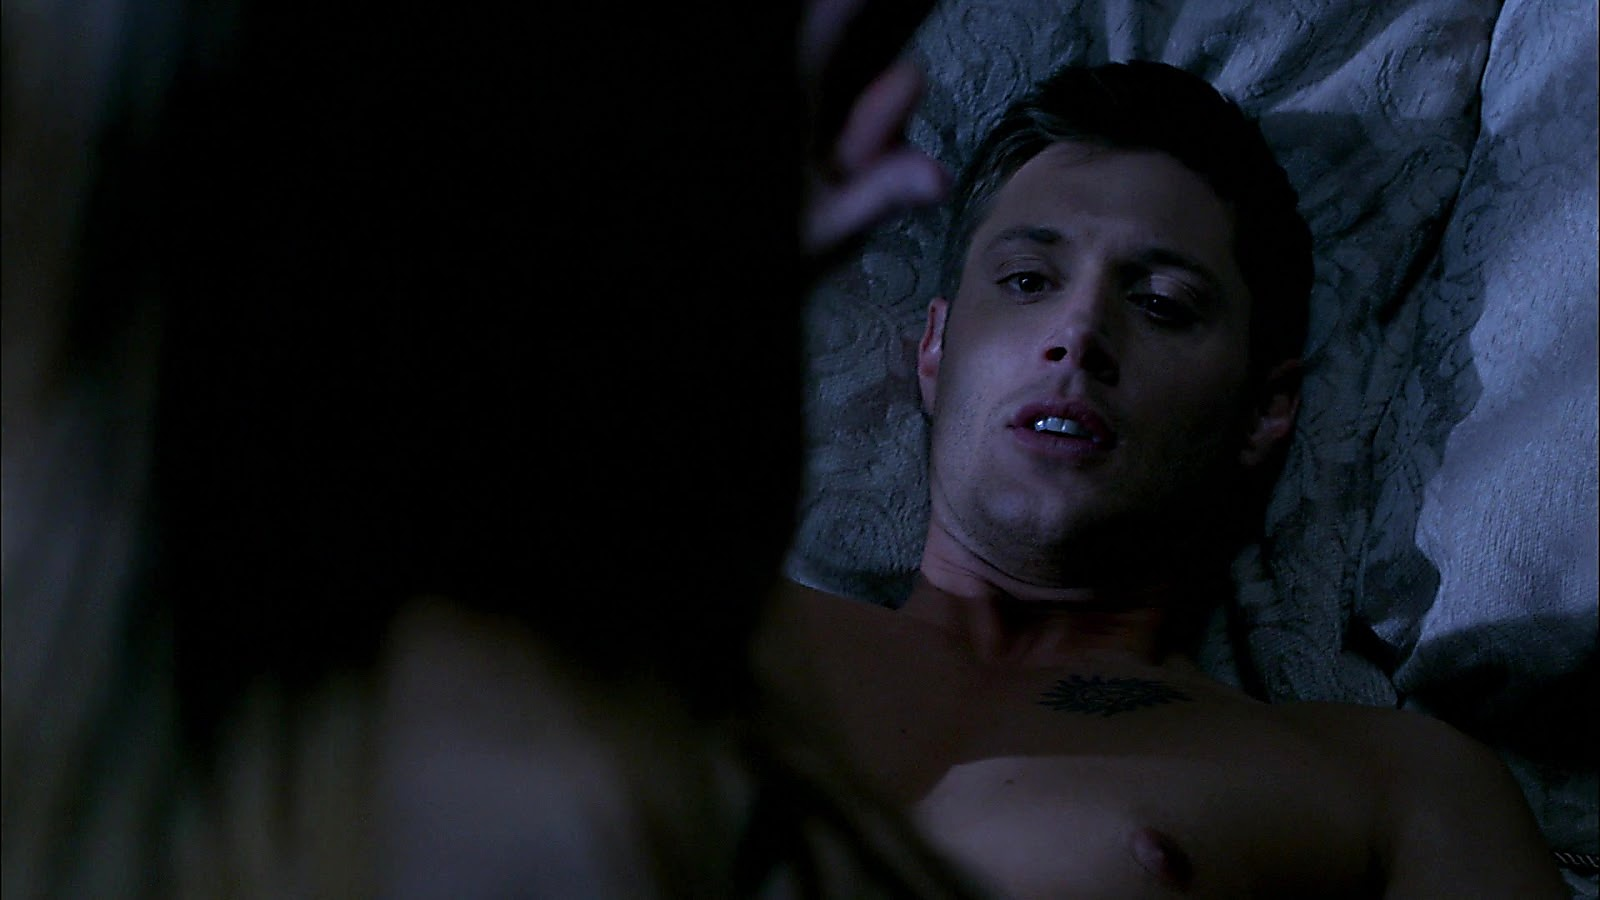 Jensen Ackles sexy shirtless scene July 22, 2020, 4am